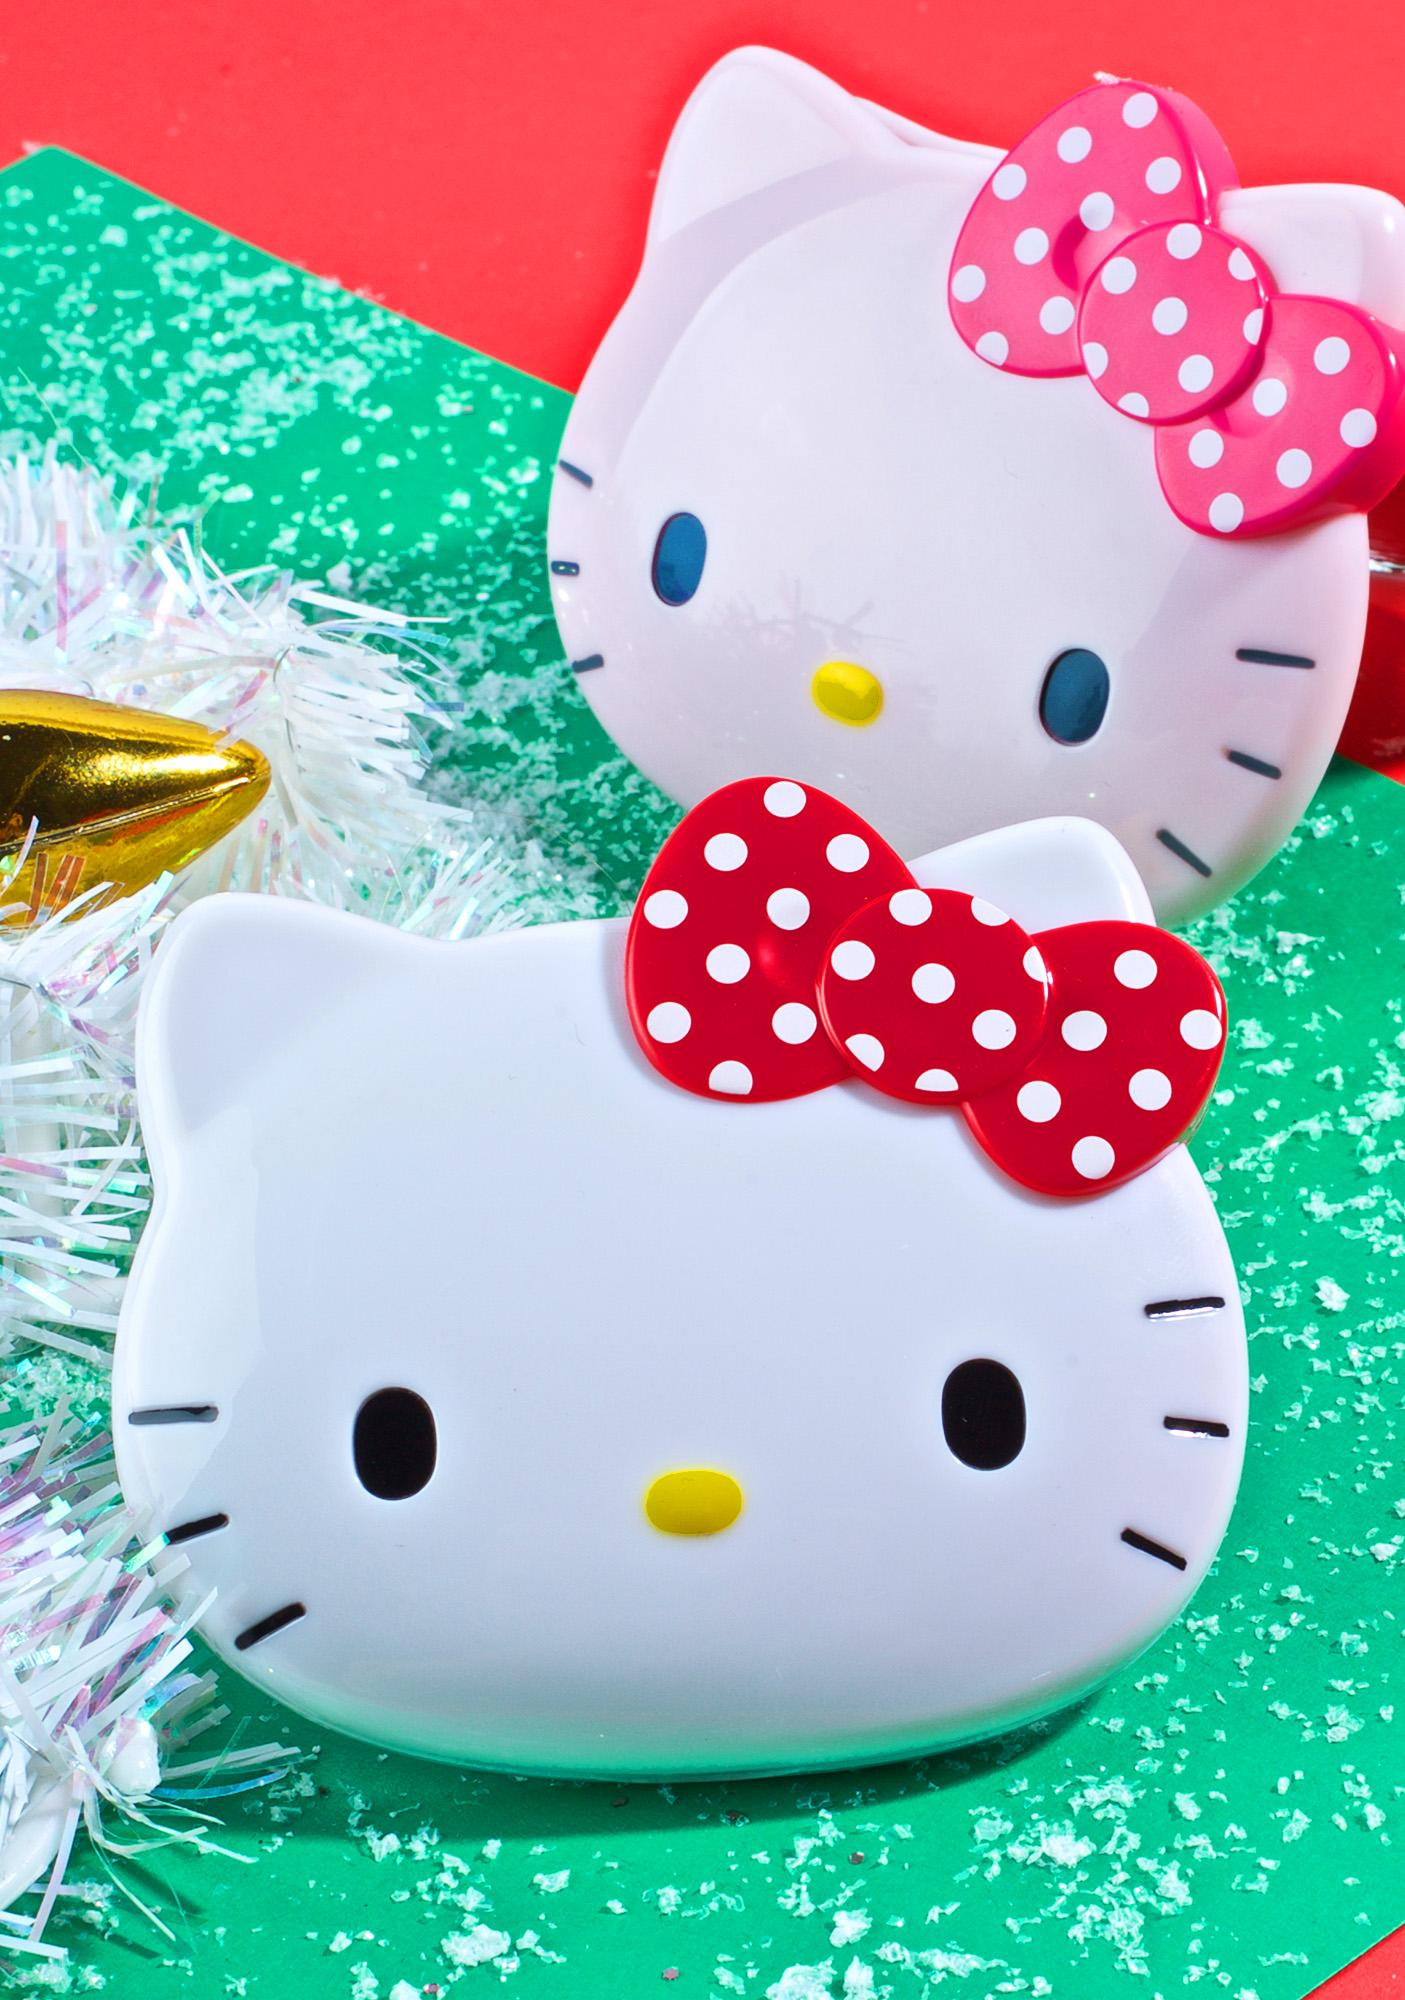 Sanrio Hello Kitty Compact Mirror